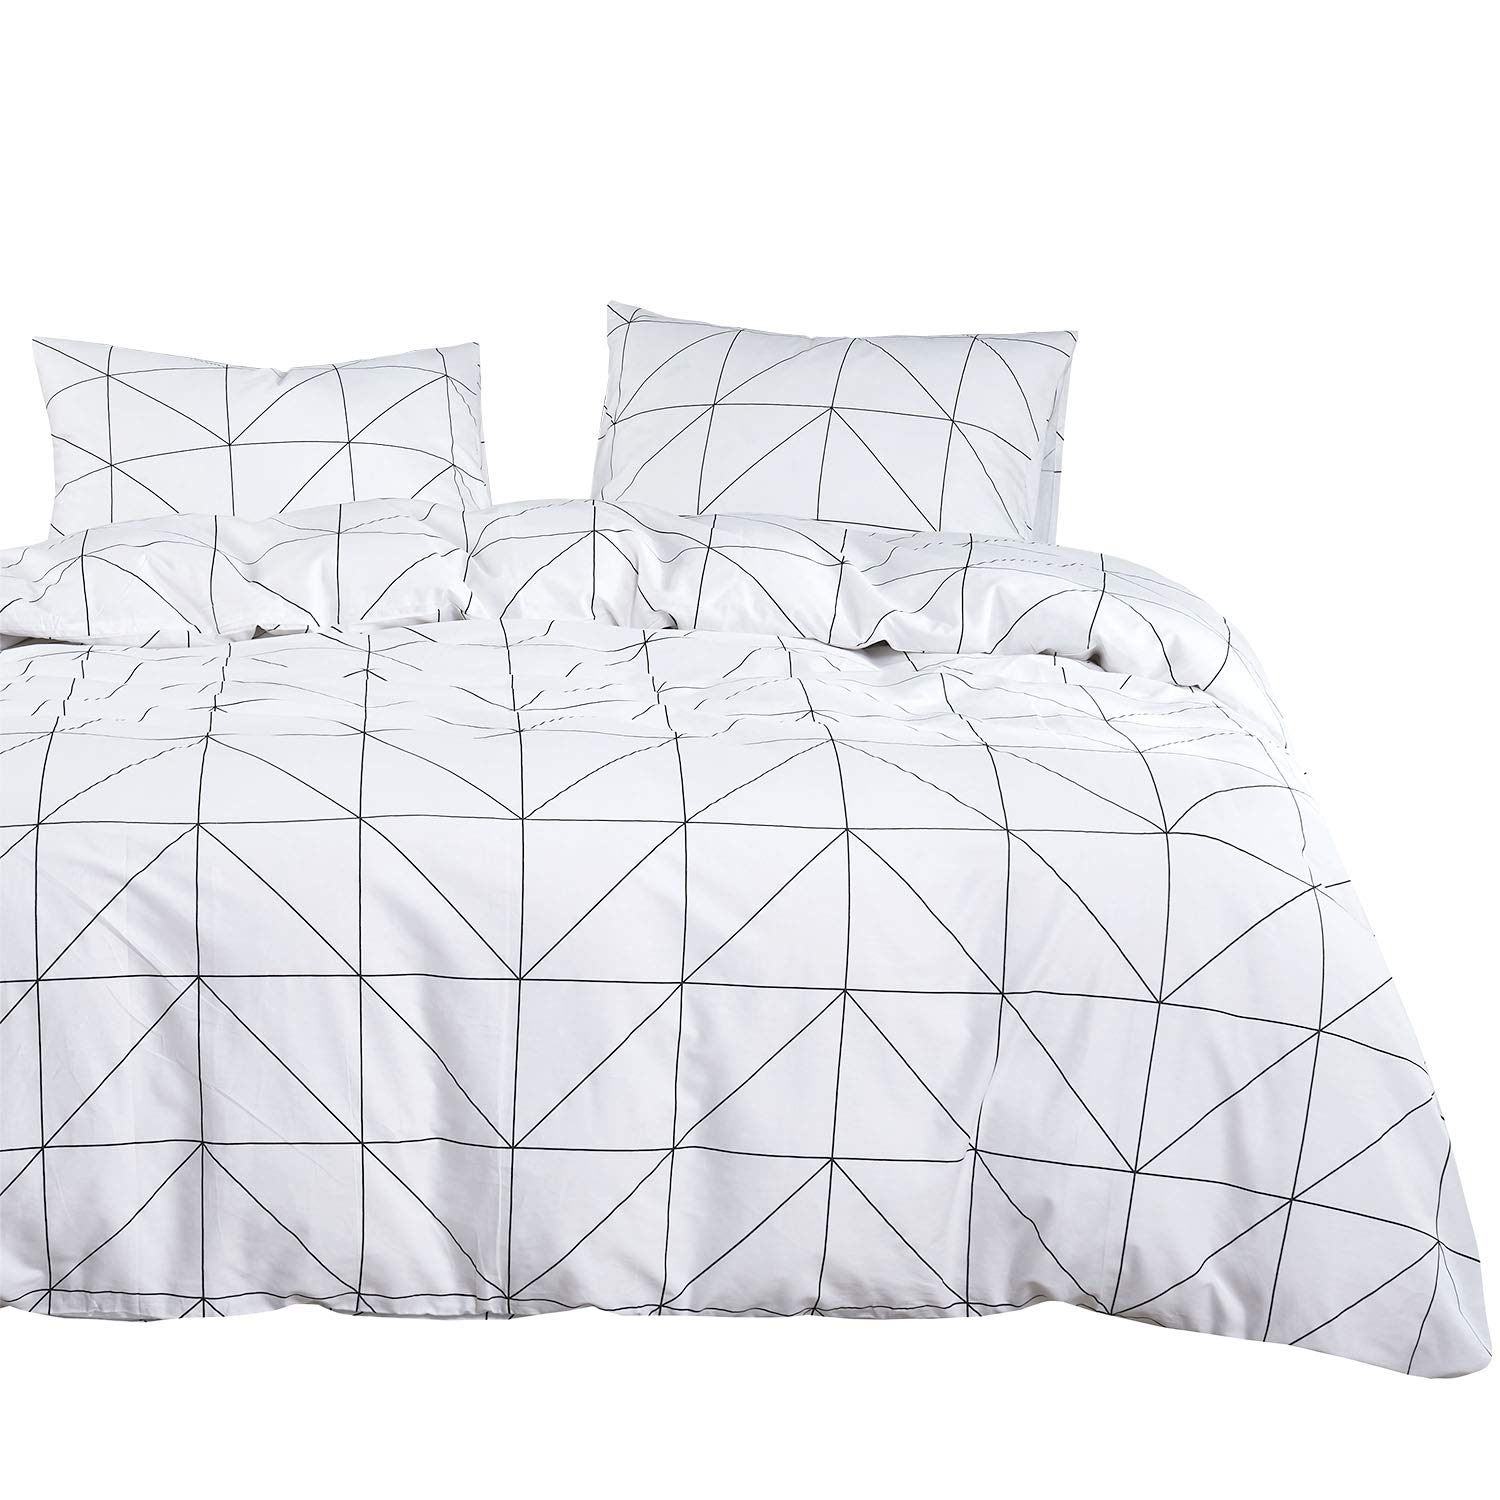 Wake In Cloud Grey Gray Black and White Modern Pattern Printed Marble Comforter Set B0400-BZ3-250-Q M 100/% Cotton Fabric with Soft Microfiber Fill Bedding 3pcs, Queen Size